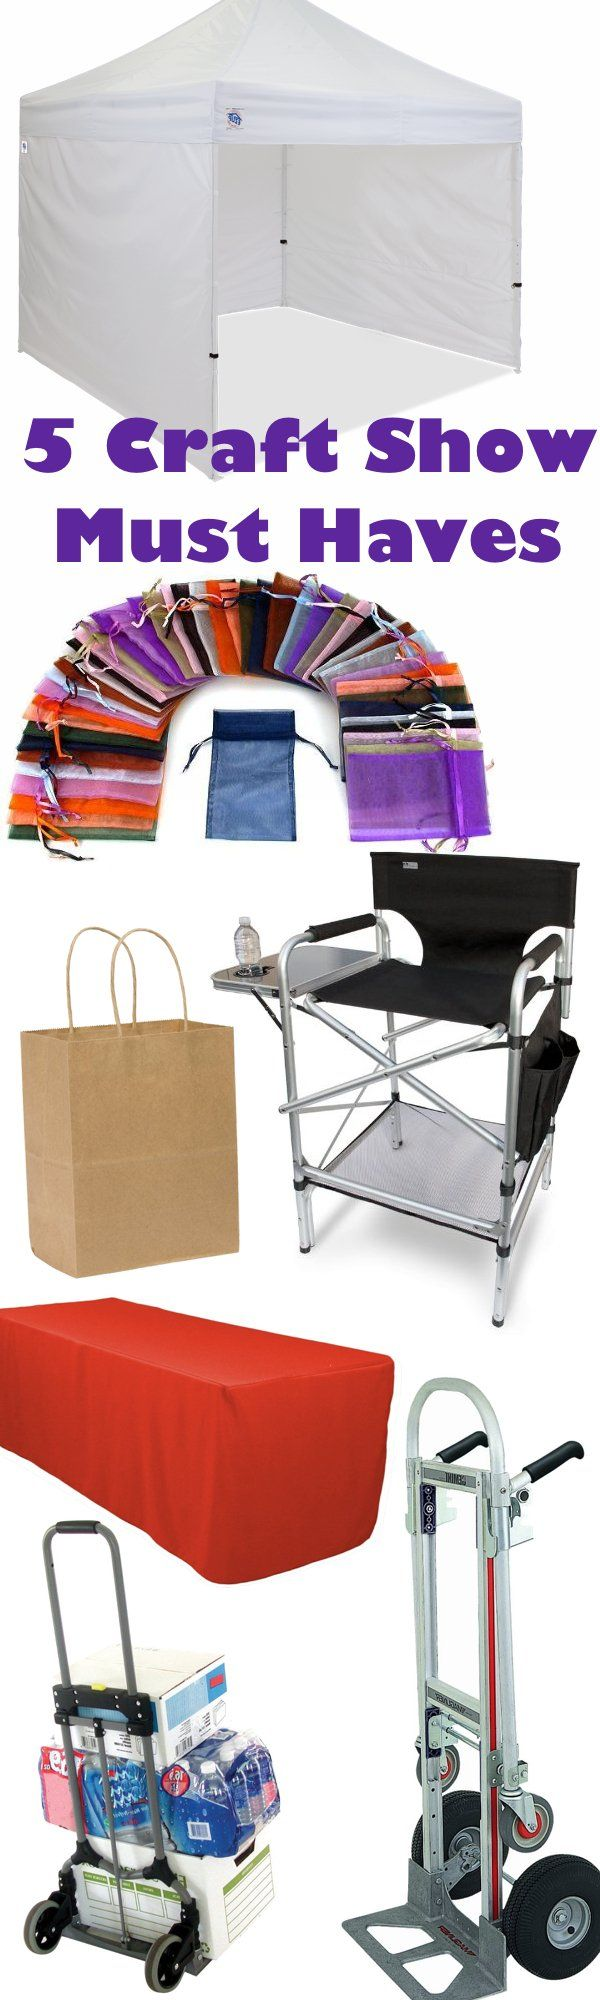 5 Craft Show Must Haves